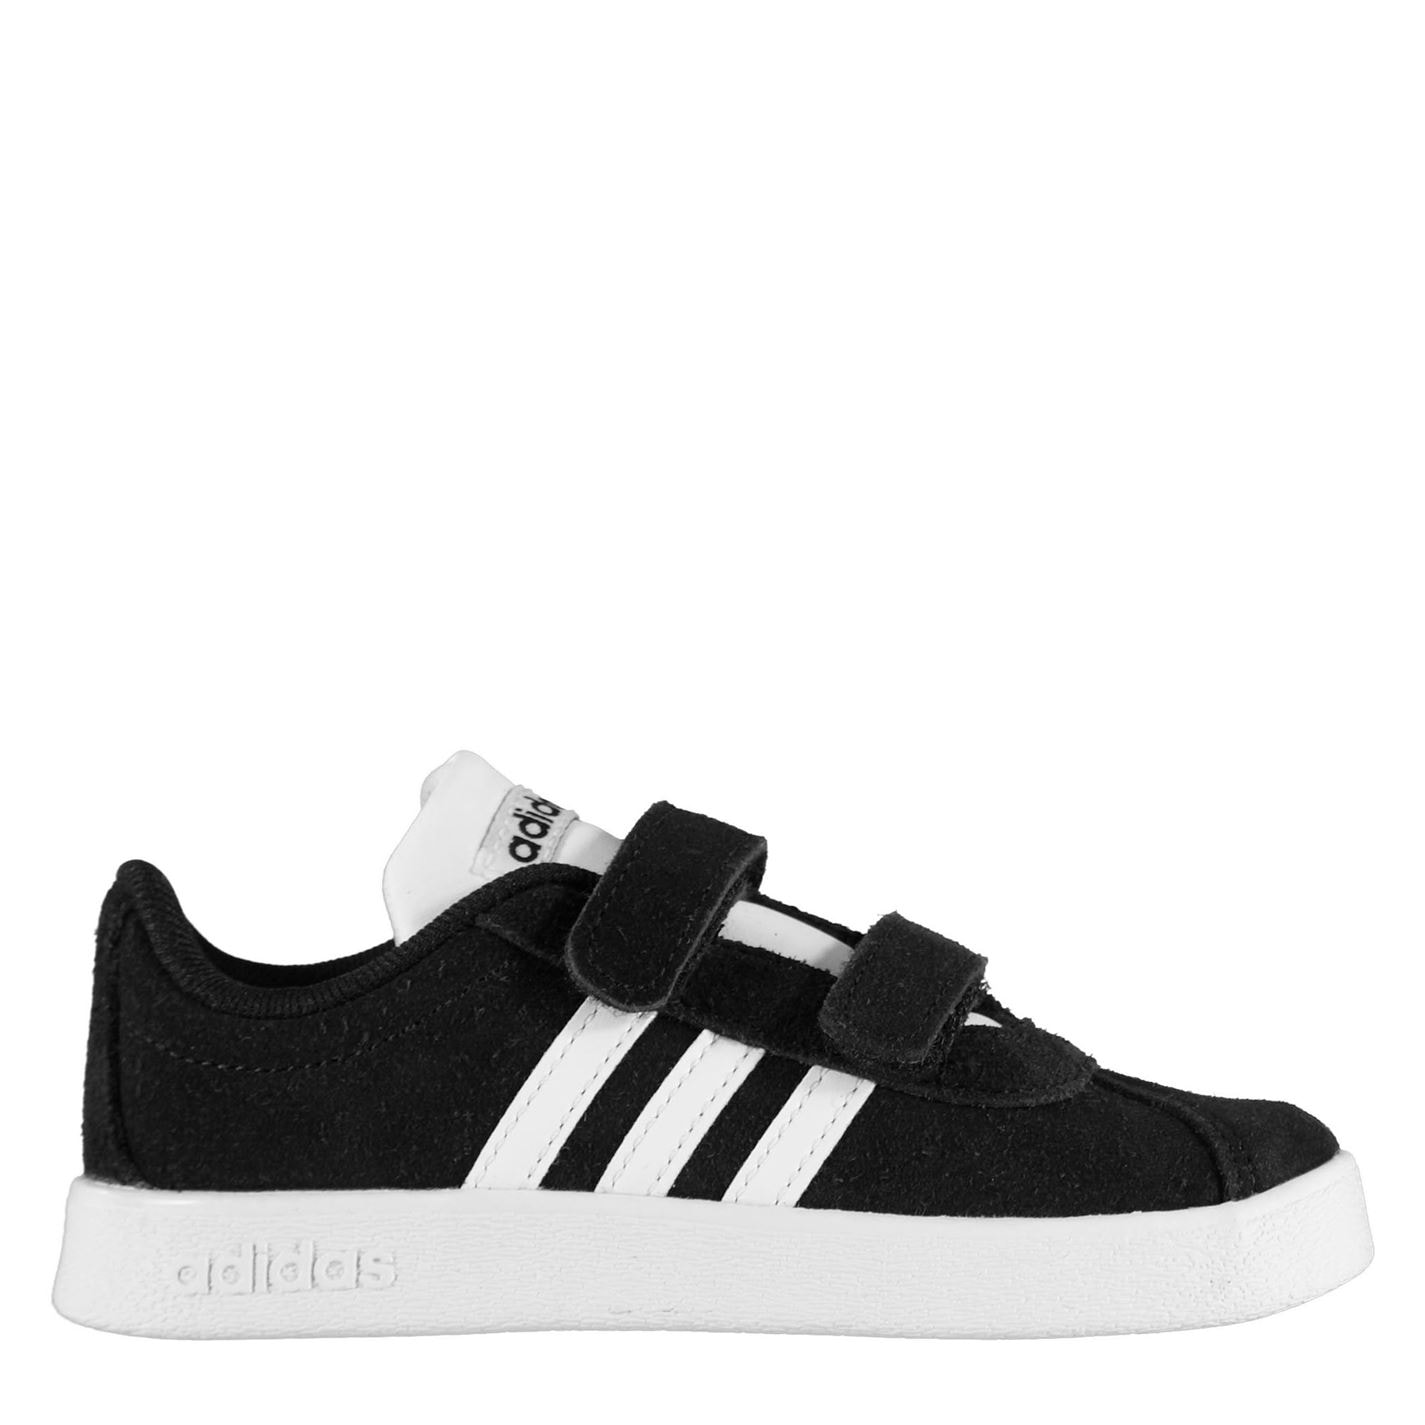 adidas VL Court Suede Trainers Infant Boys Black/White